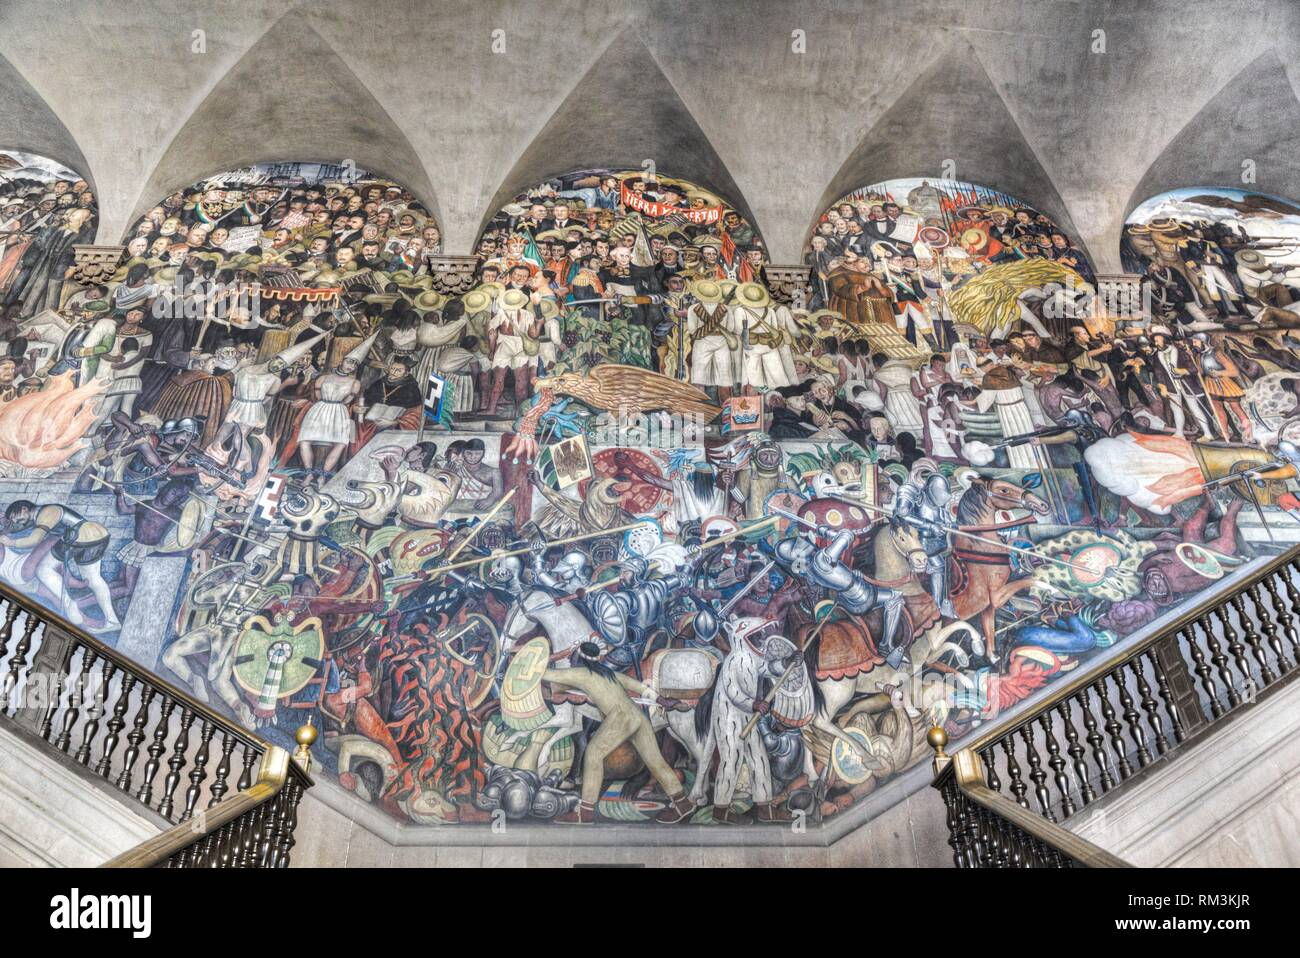 "Stairway Murals, """"The History of Mexico"""", Painted by Diego Rivera, 1929-31, Palacio Nacional de Mexico, Mexico City, Mexico Stock Photo"